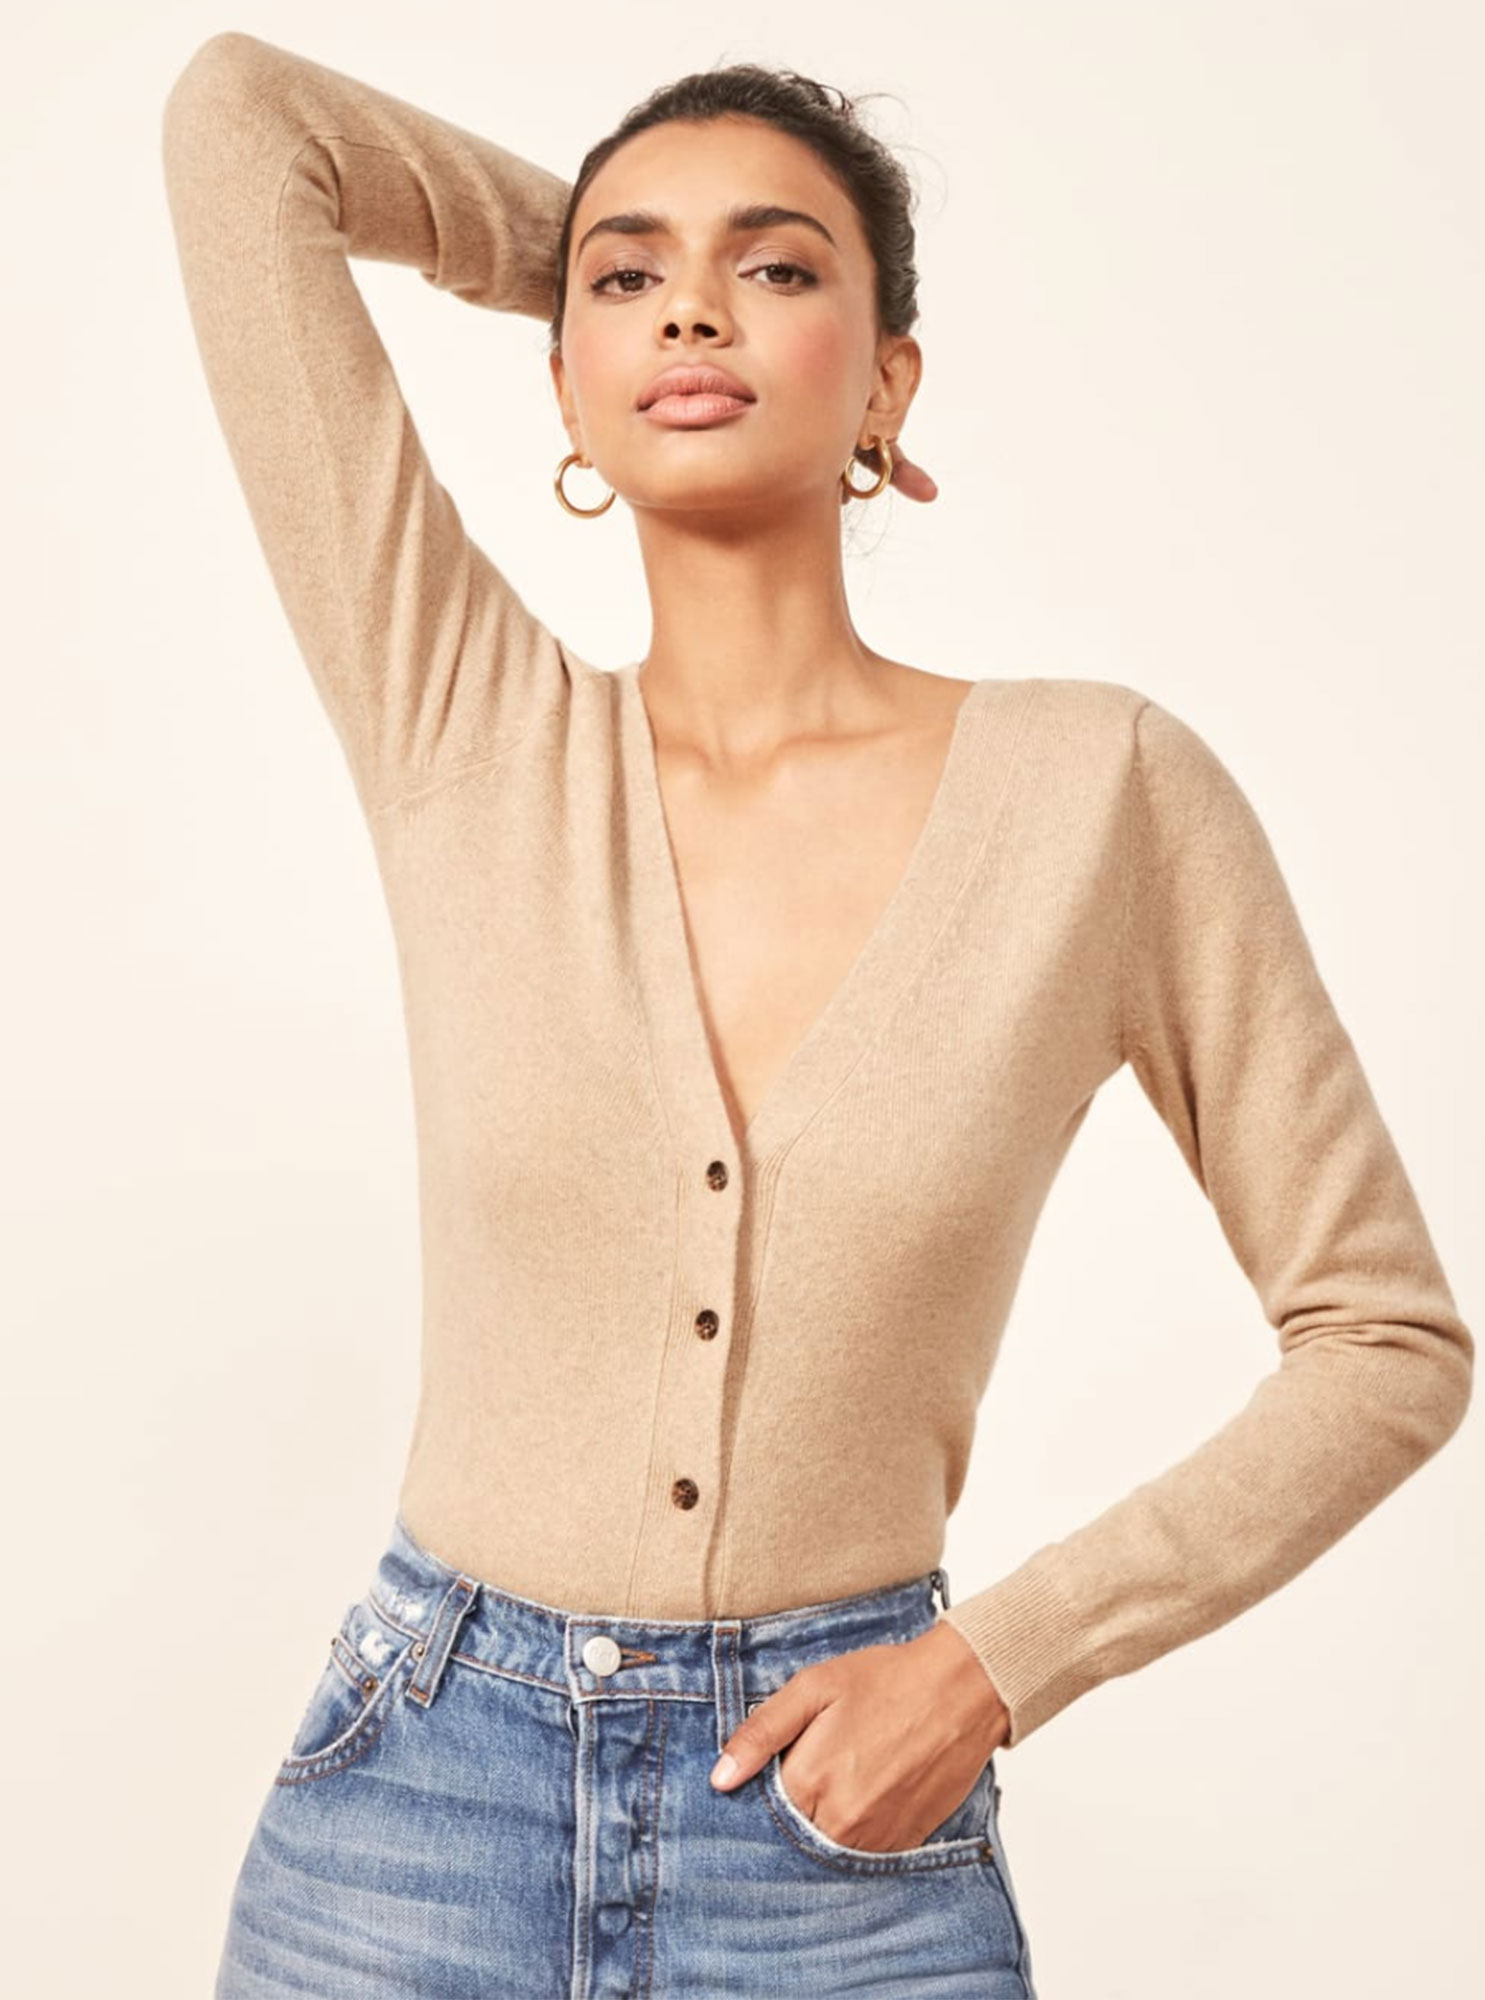 Kendal Jenner Is Bringing Back the Cropped Cardigan ‹ and So Can You - May we suggest you leave simple V-neck (made of 70 percent recycled cashmere!) on the back of your desk chair for chilly office afternoons. $148, thereformation.com